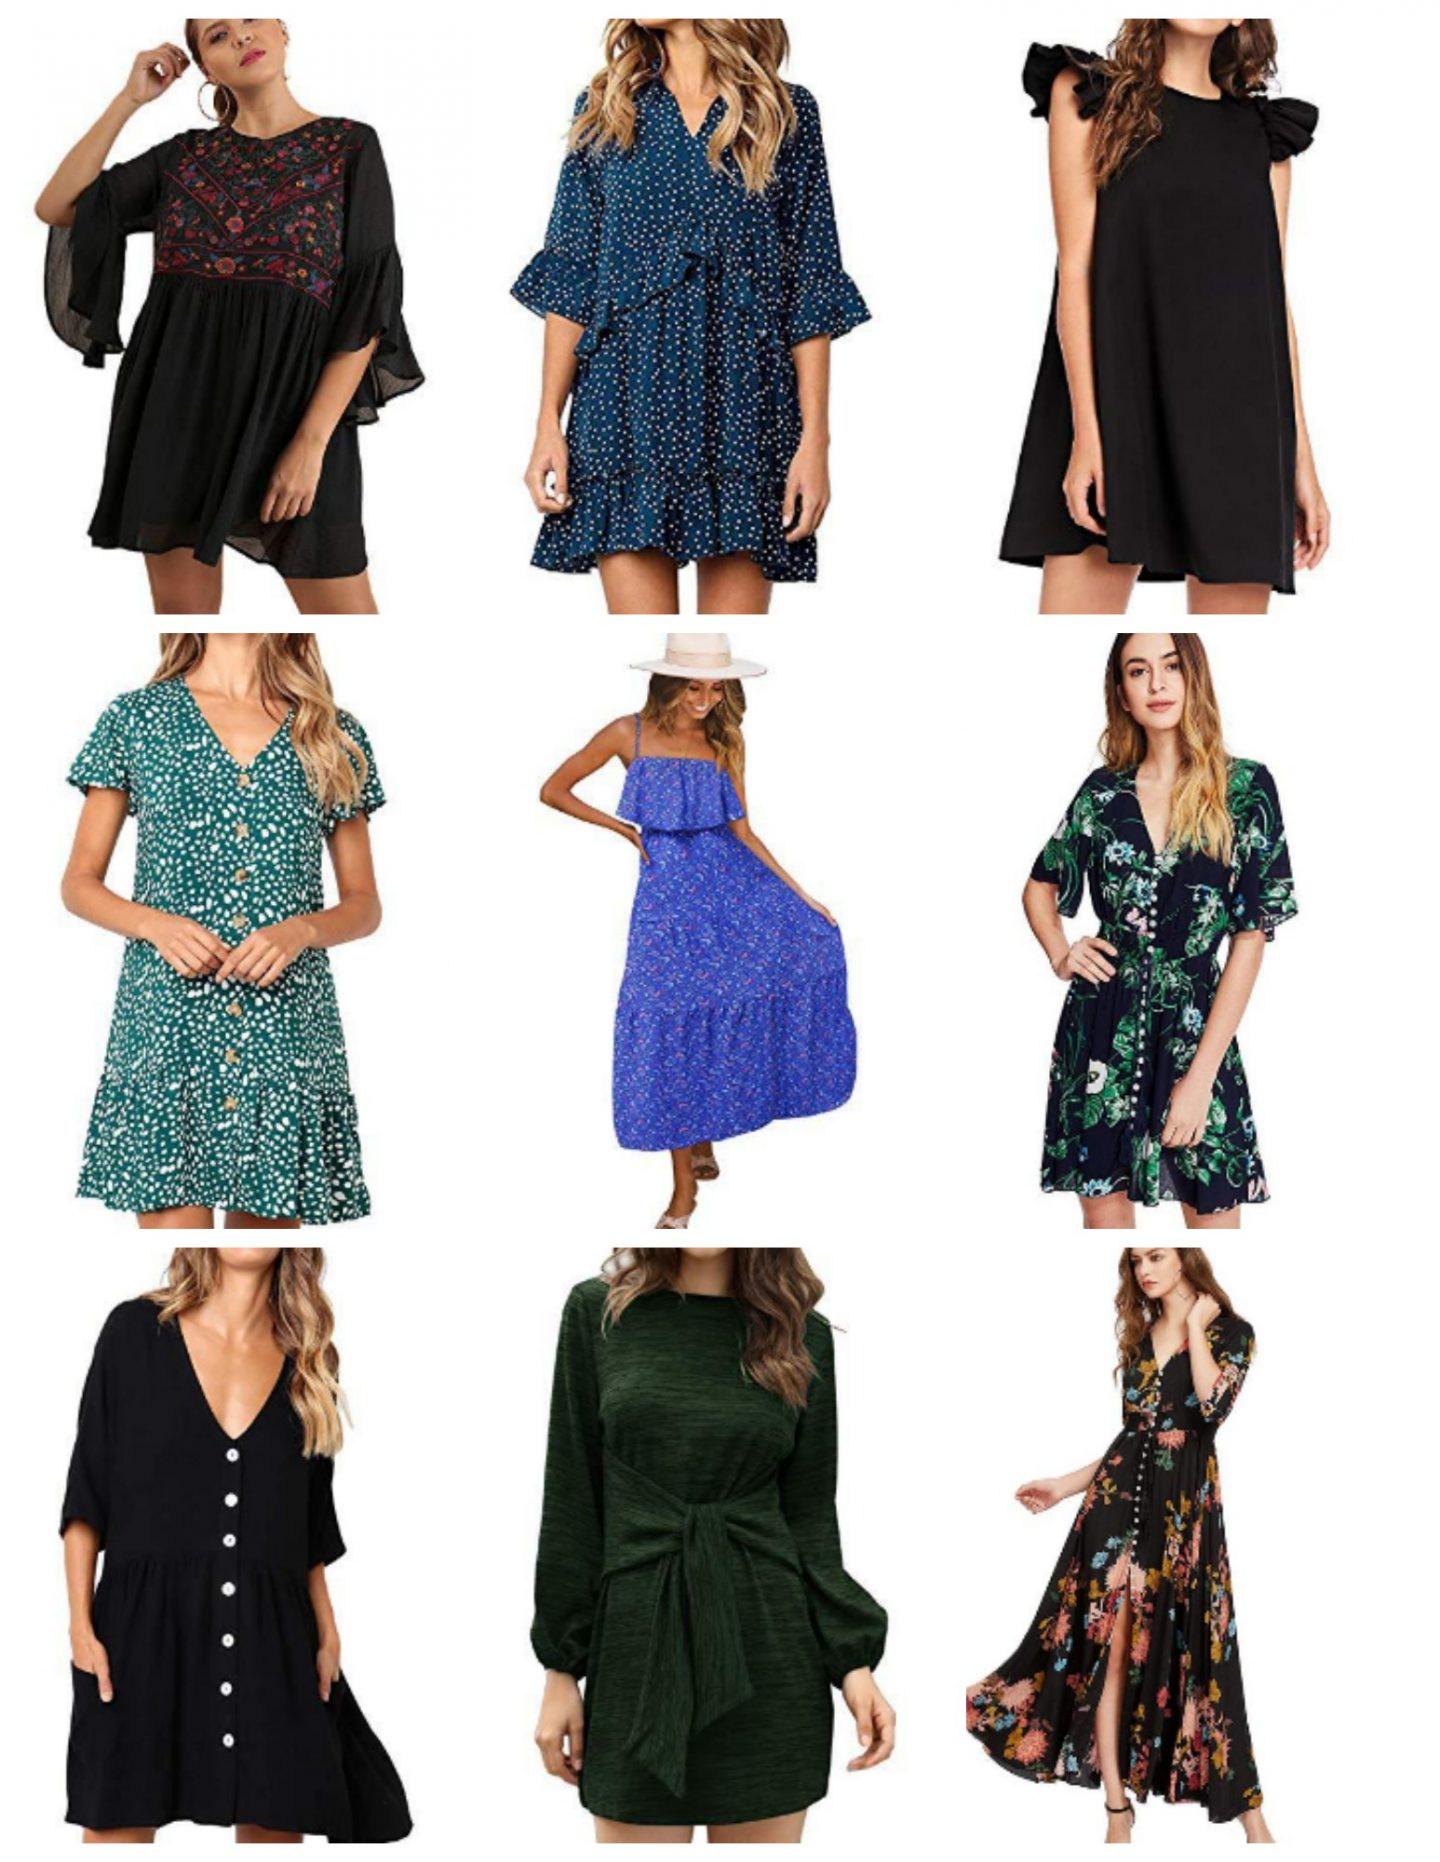 Tuesday's Cravings: Amazon Dresses-@headtotoechic-Head to Toe Chic